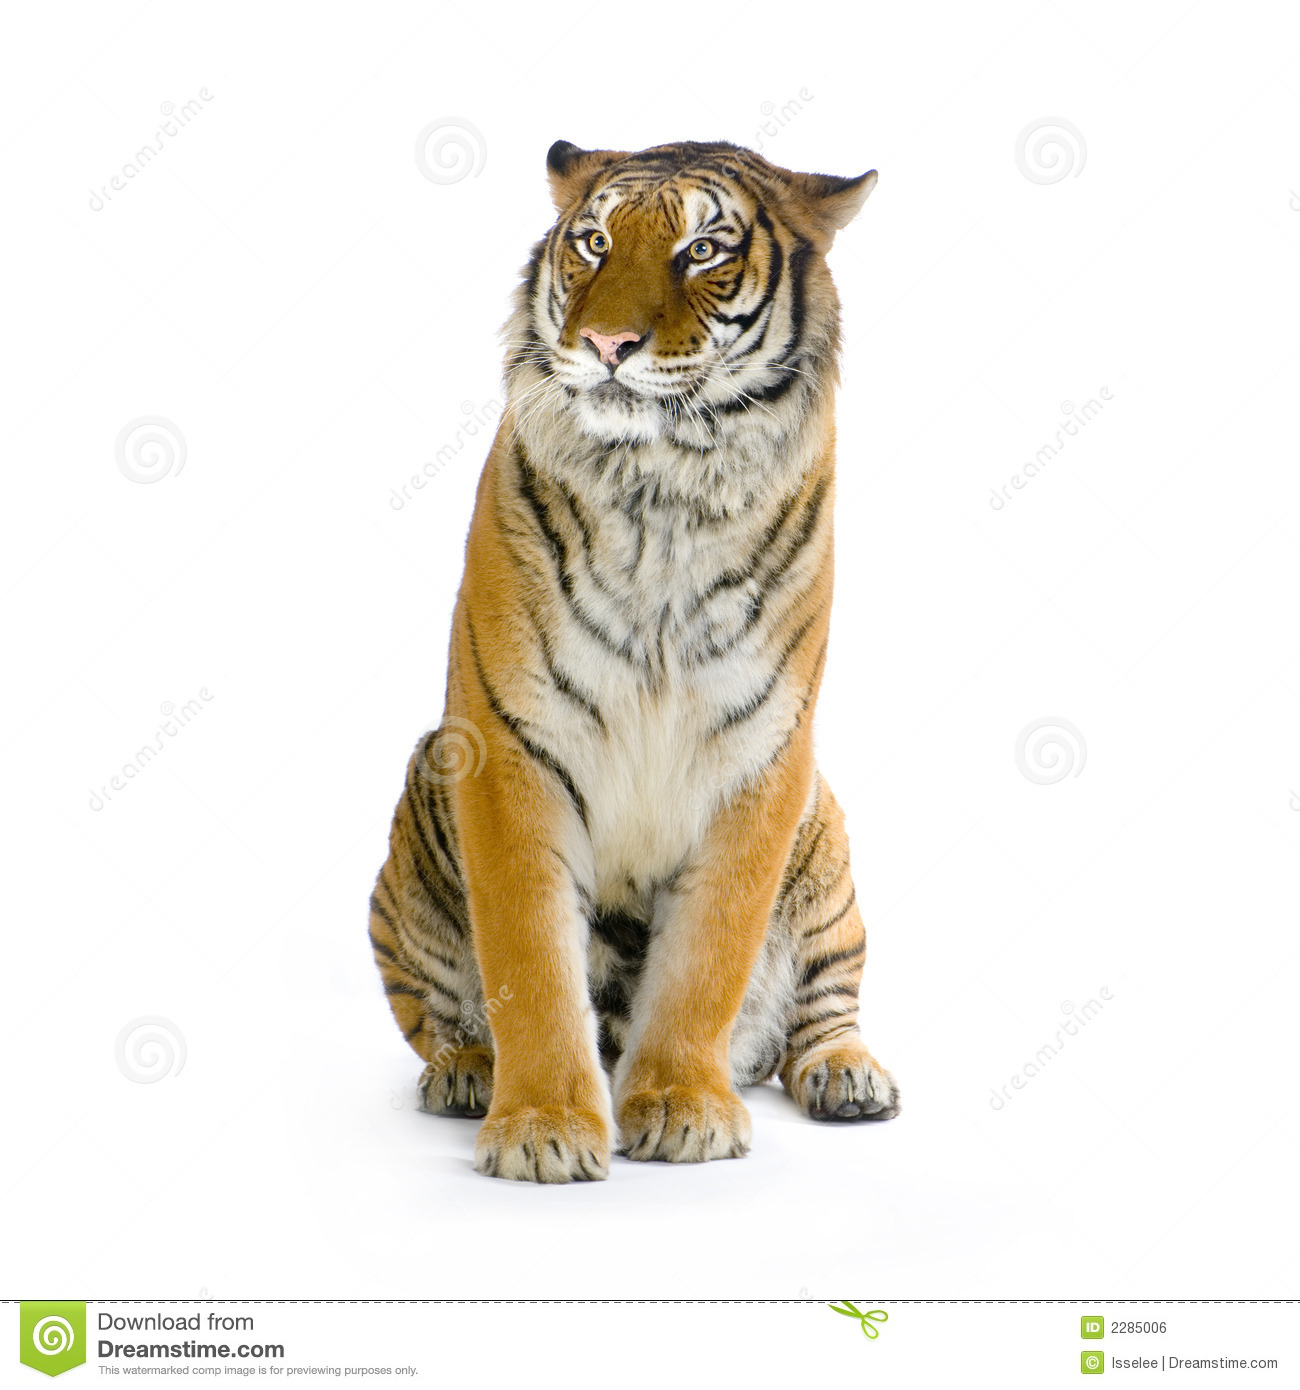 Tiger sitting in front of a white background all my pictures are